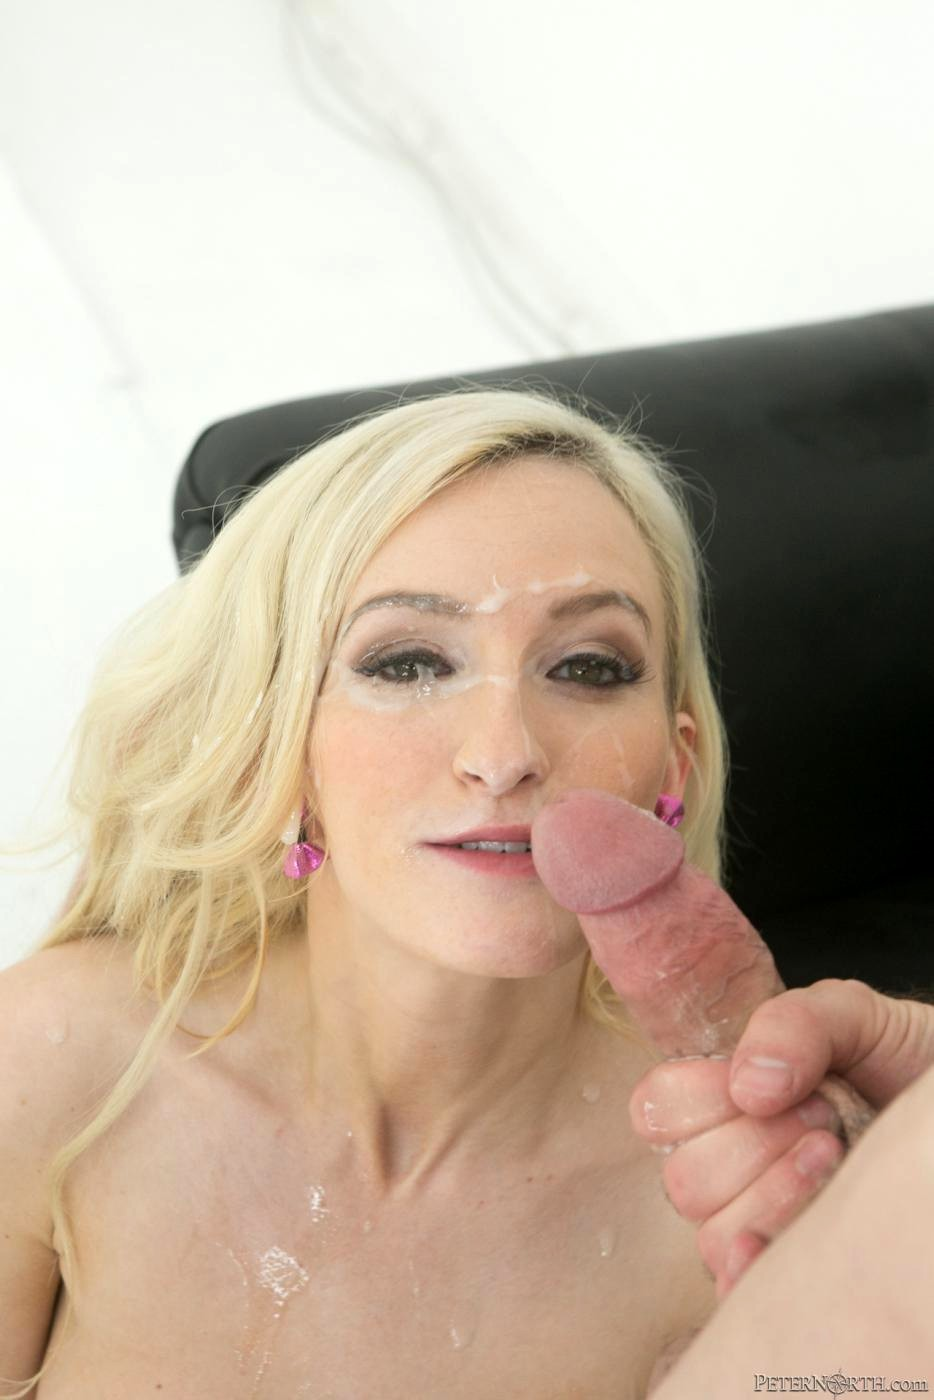 Vieille Peter north facial cum shots god! Brandi